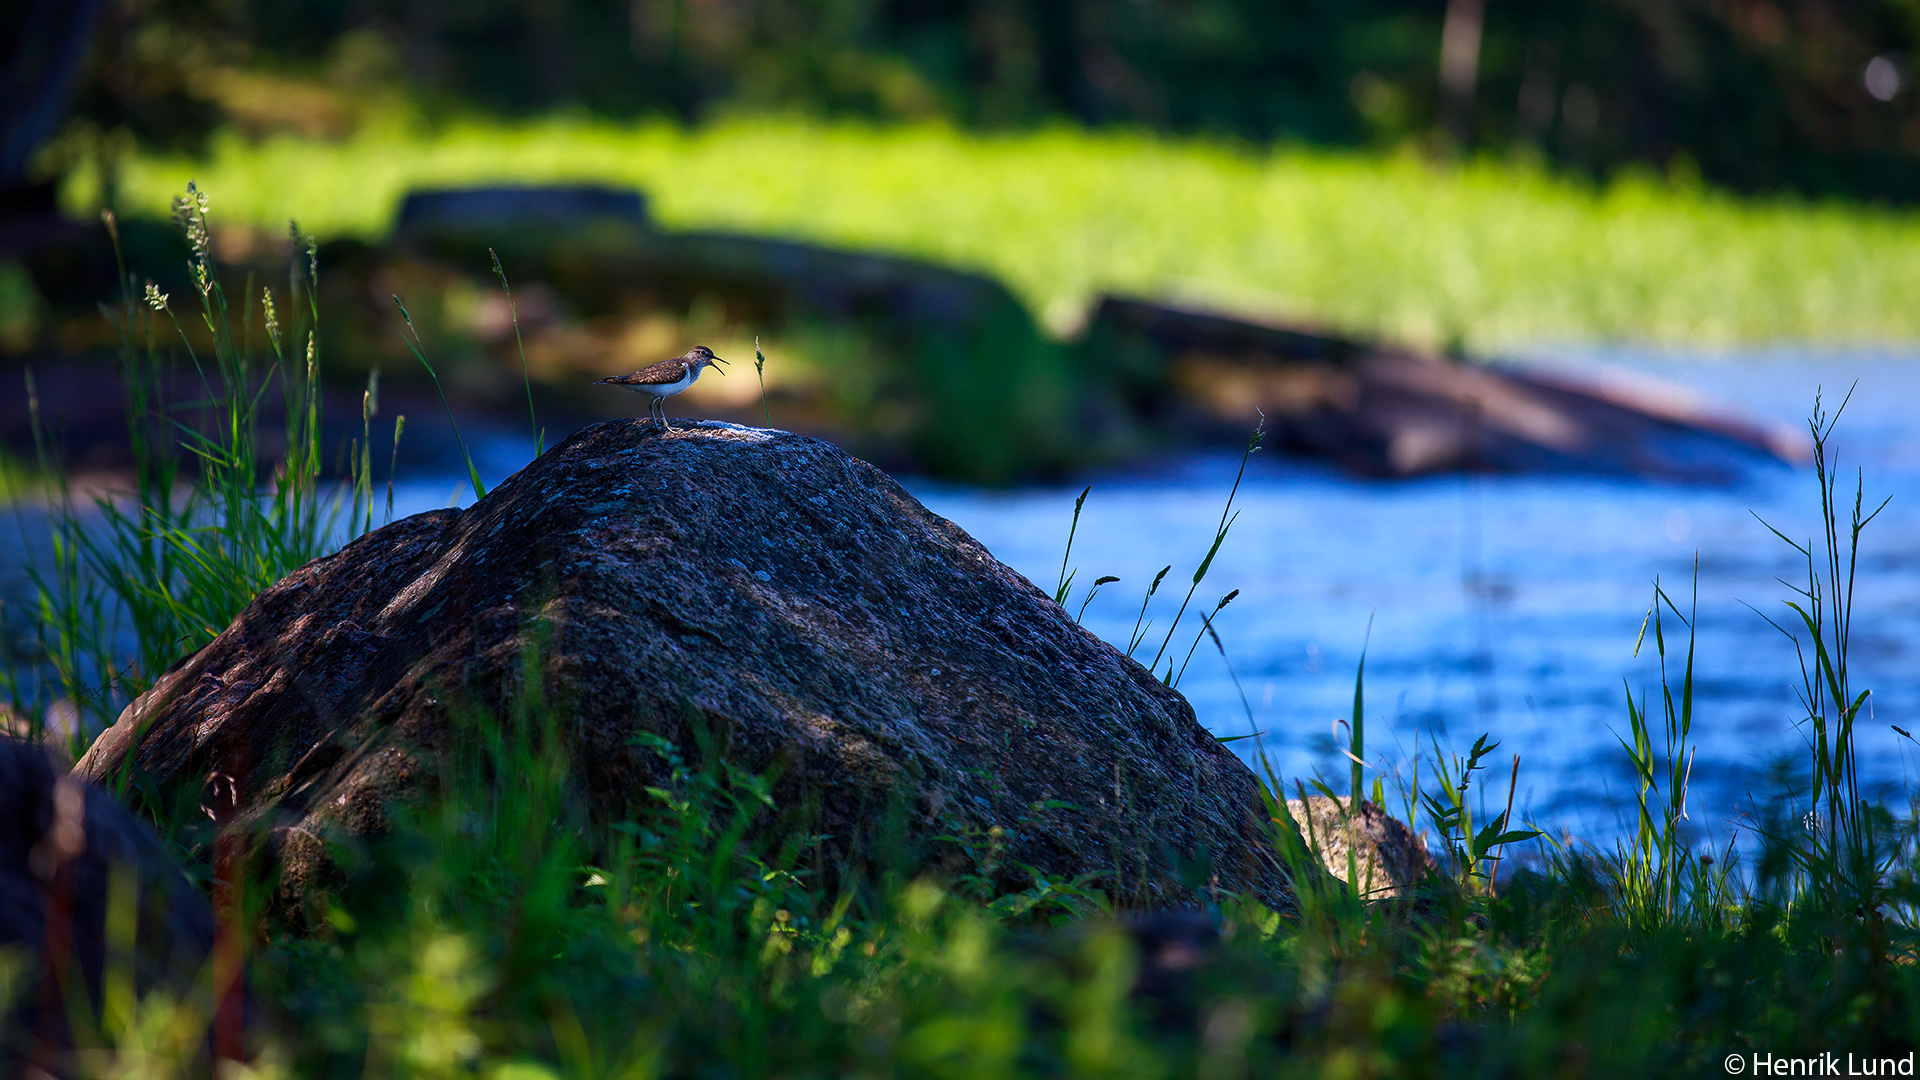 Common sandpiper in its habitat. Emsalö, Porvoo, Finland. June 2018.